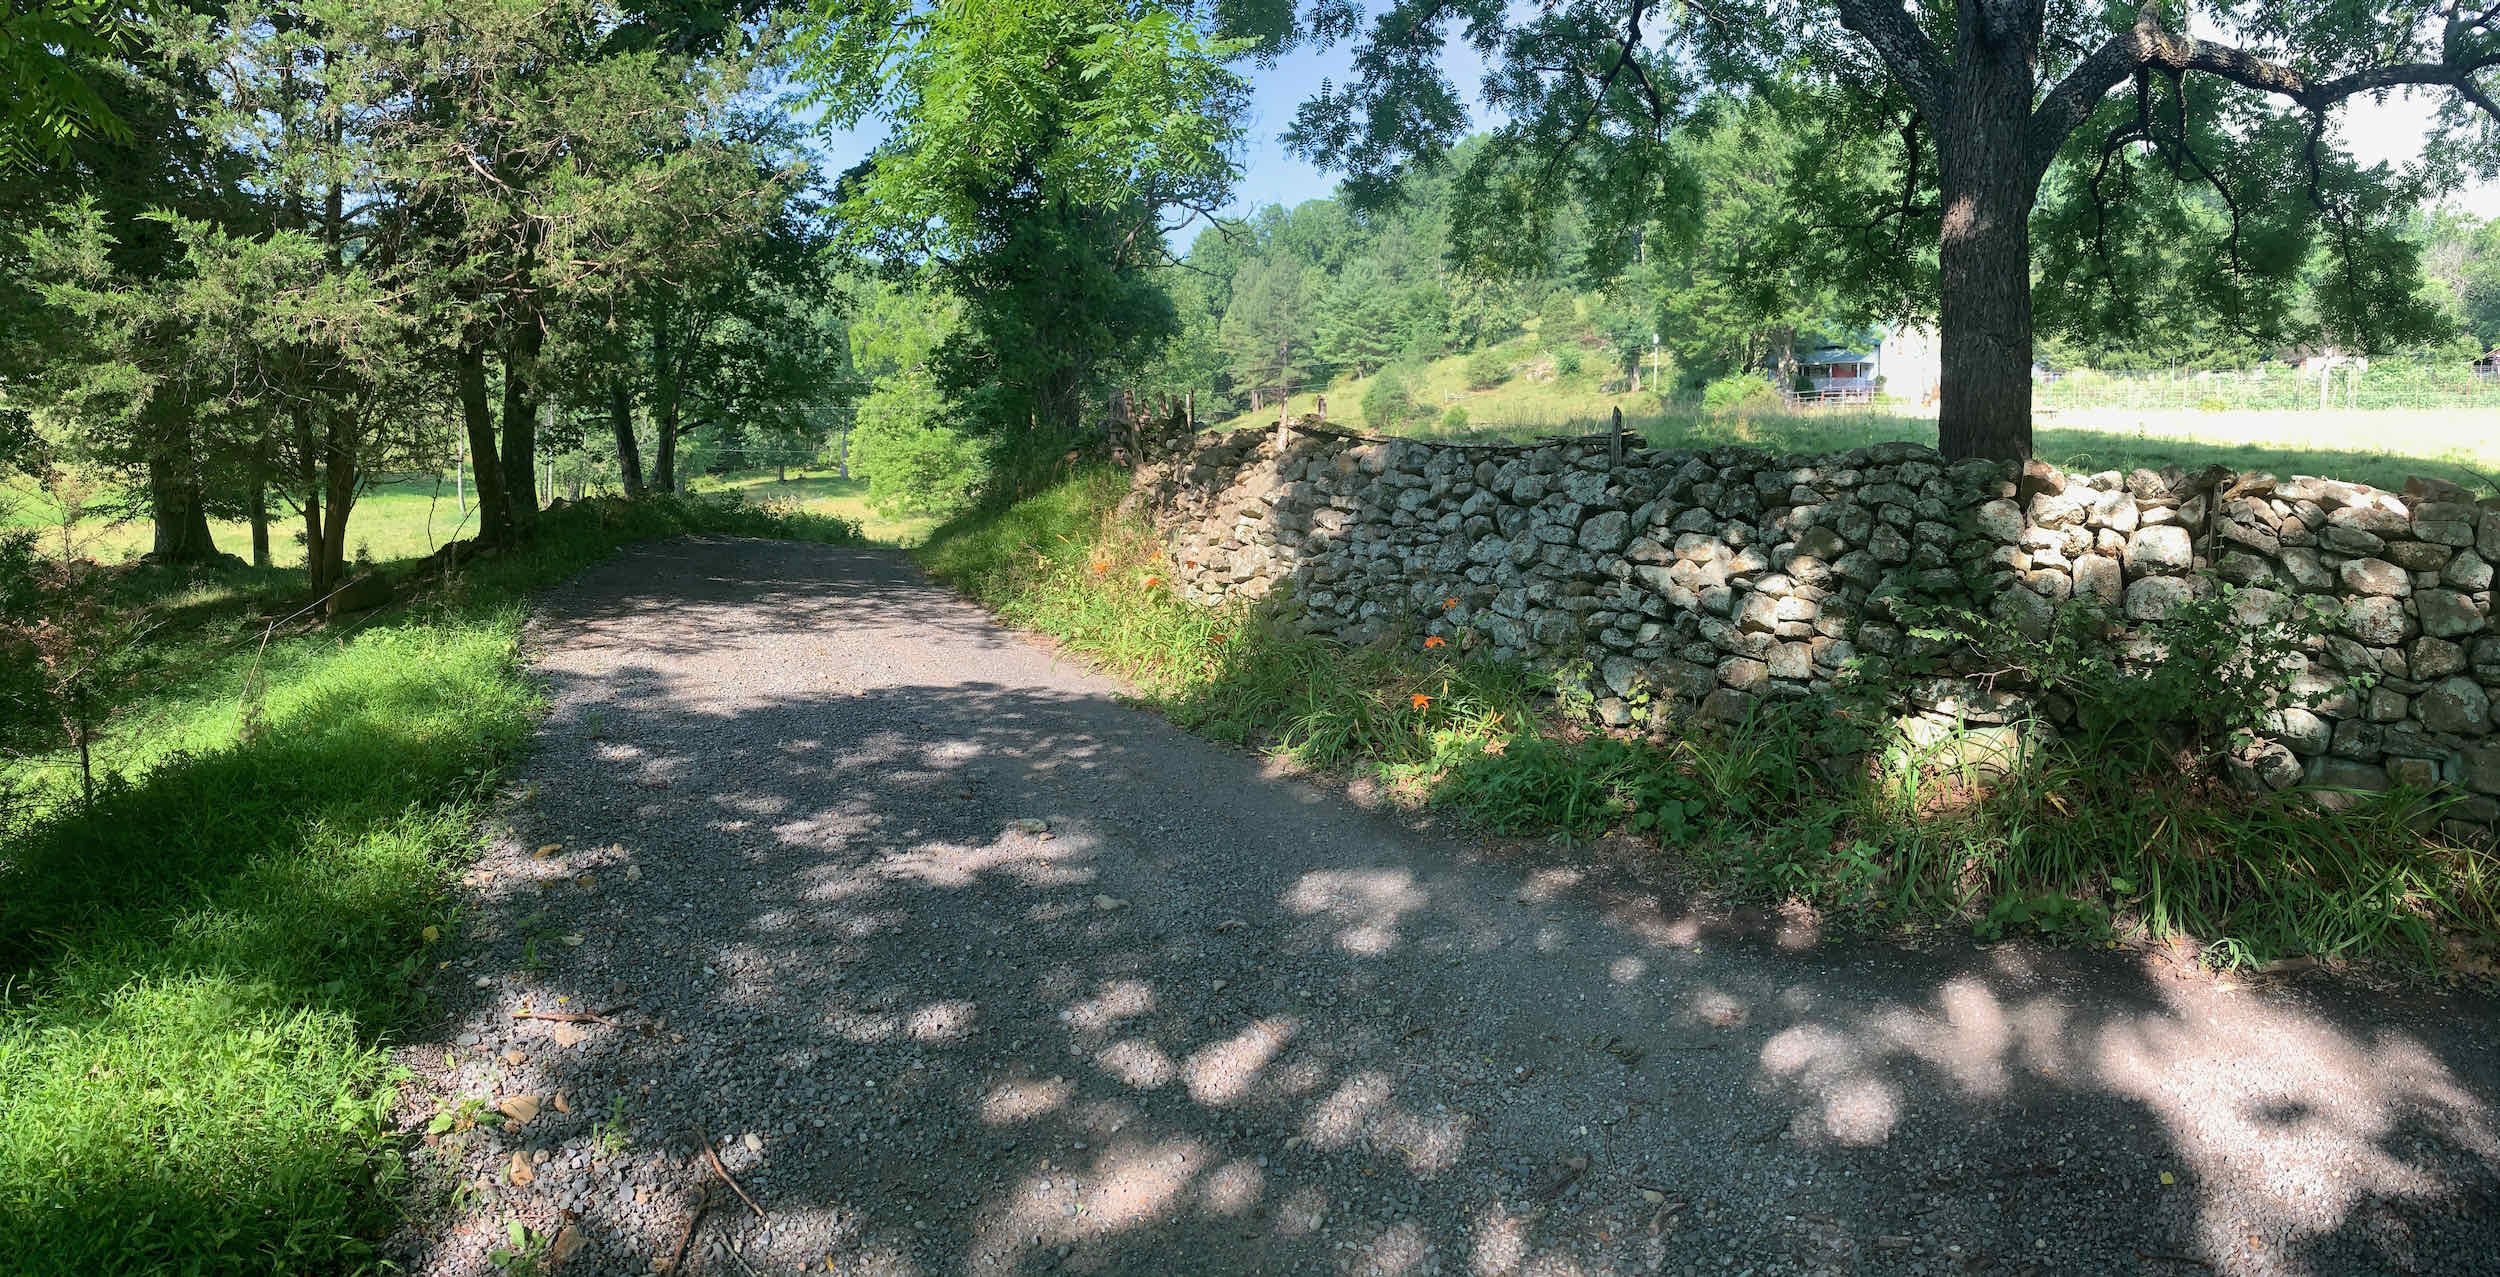 Passing old homesteads and stone walls along Rolling Road